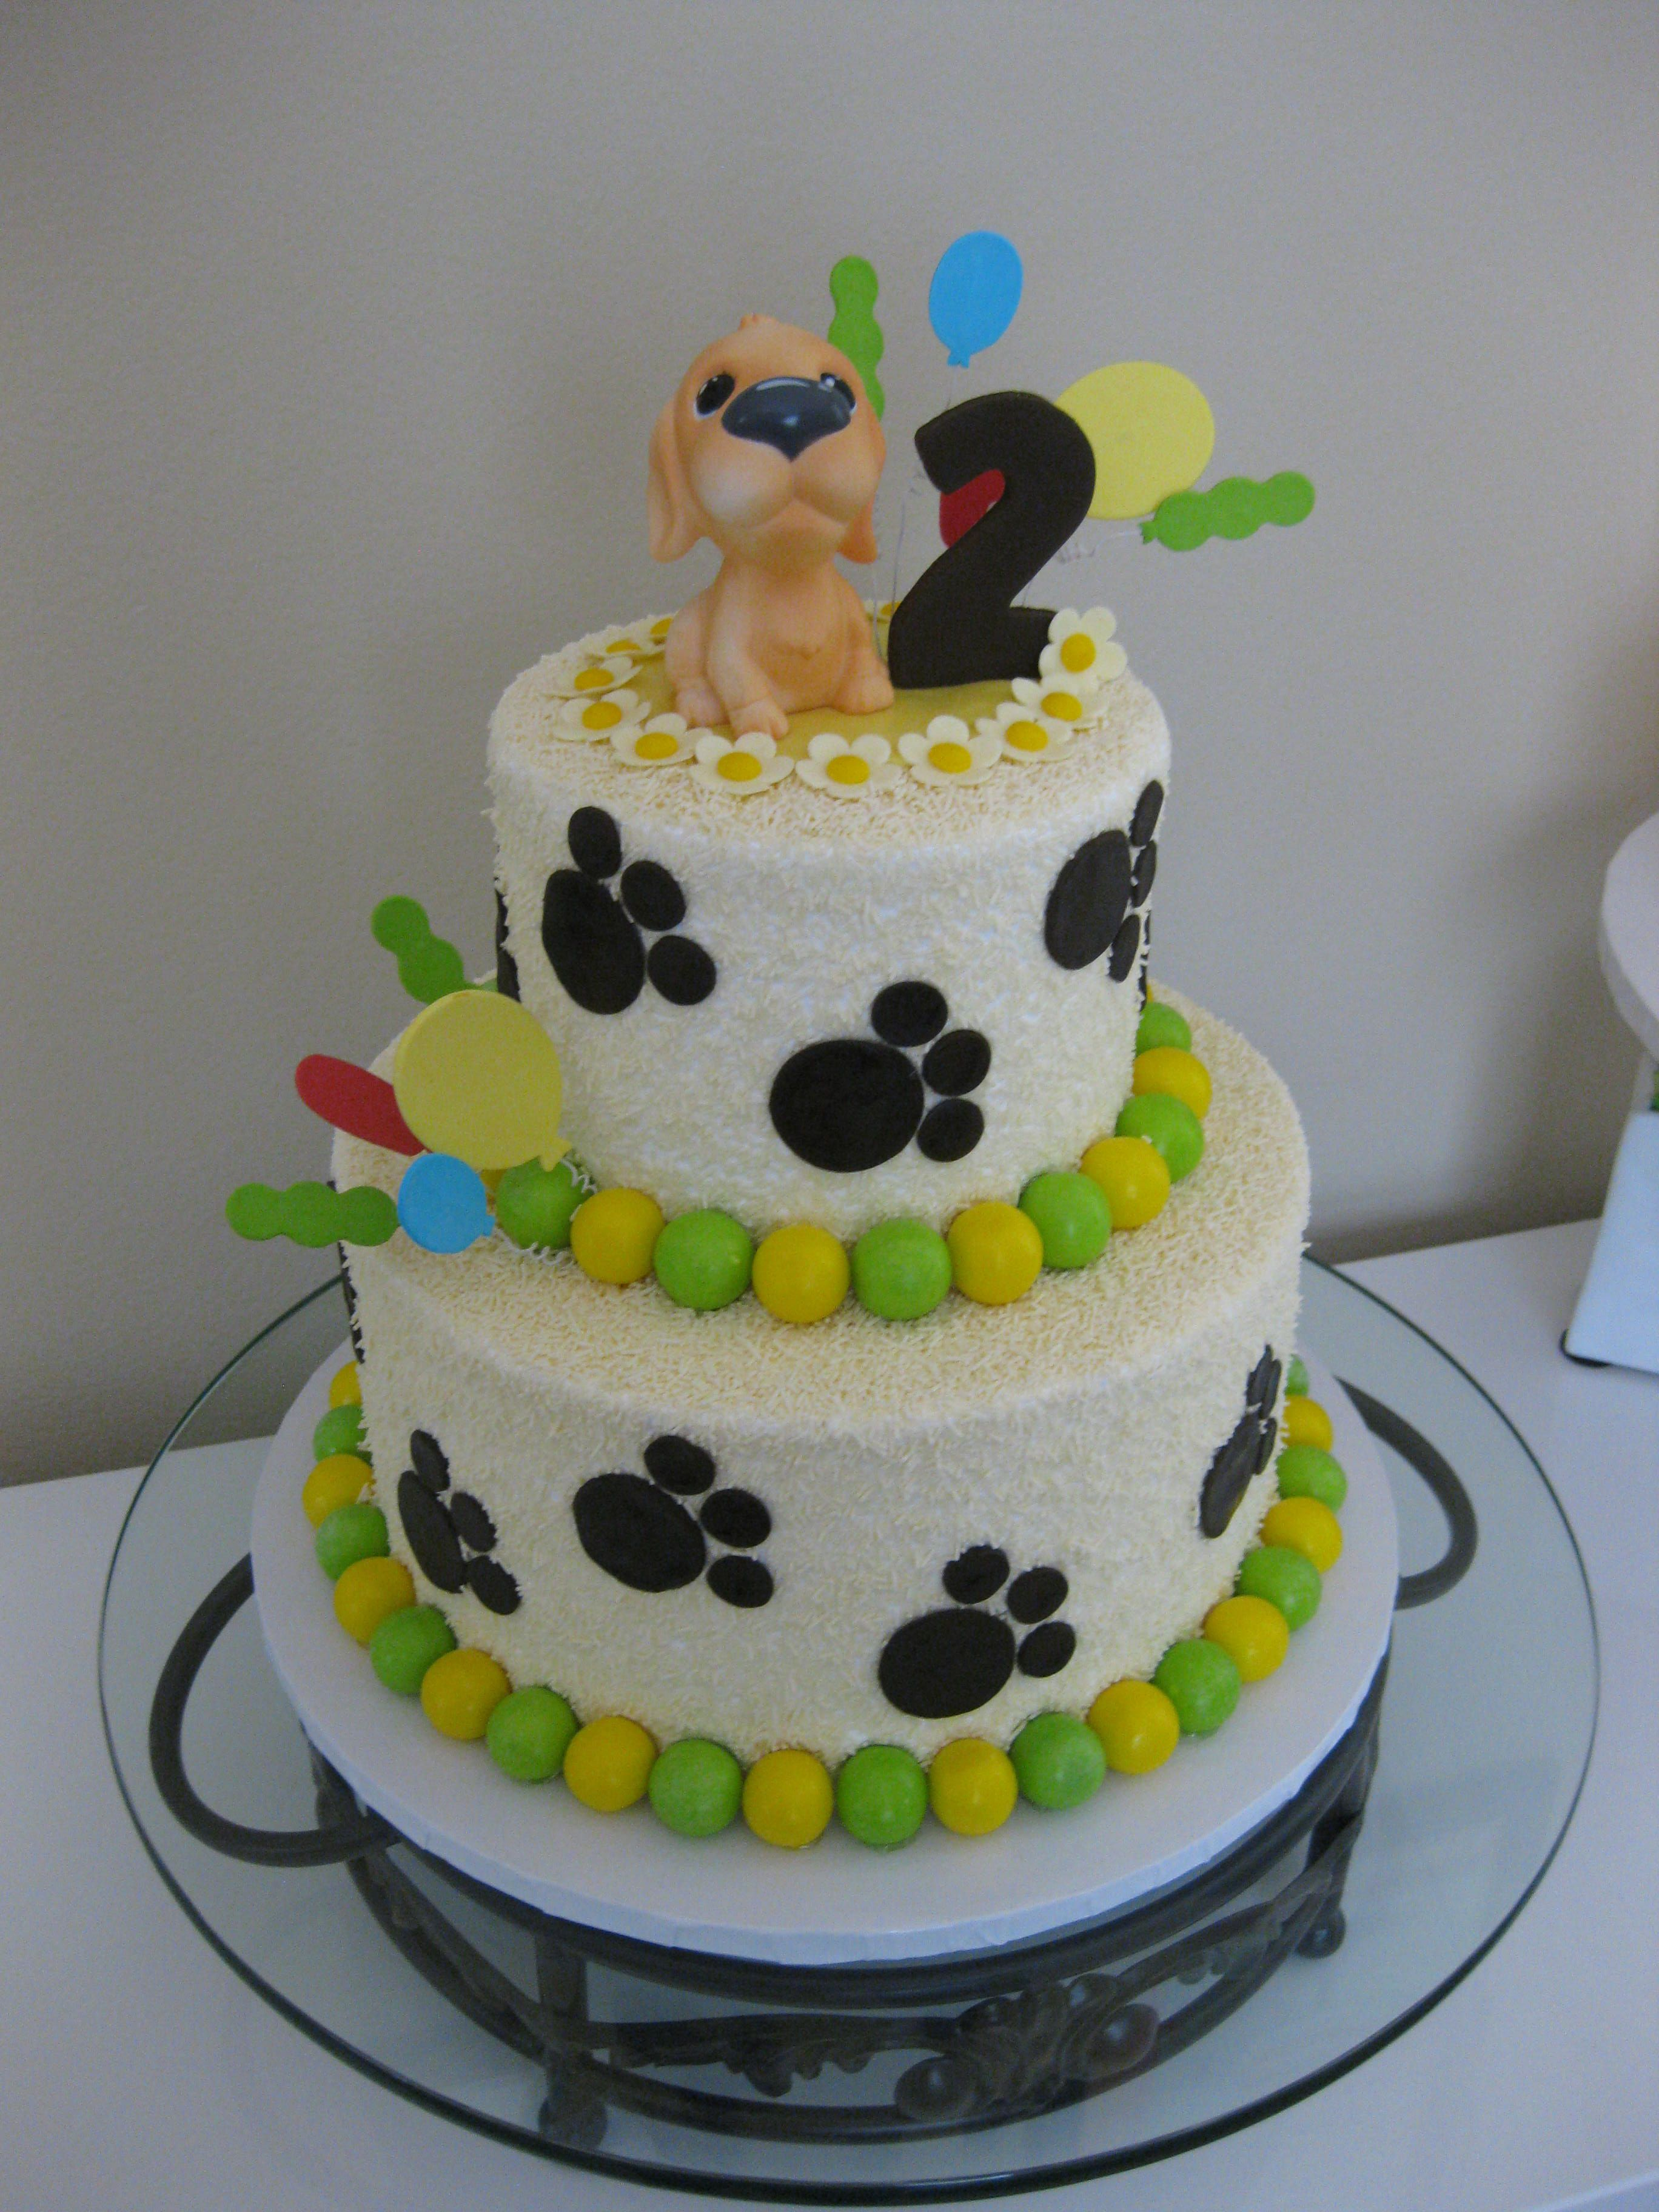 Cake Design For Little Boy : Birthday cake for a little boy... Birthday/Birthday cake ...